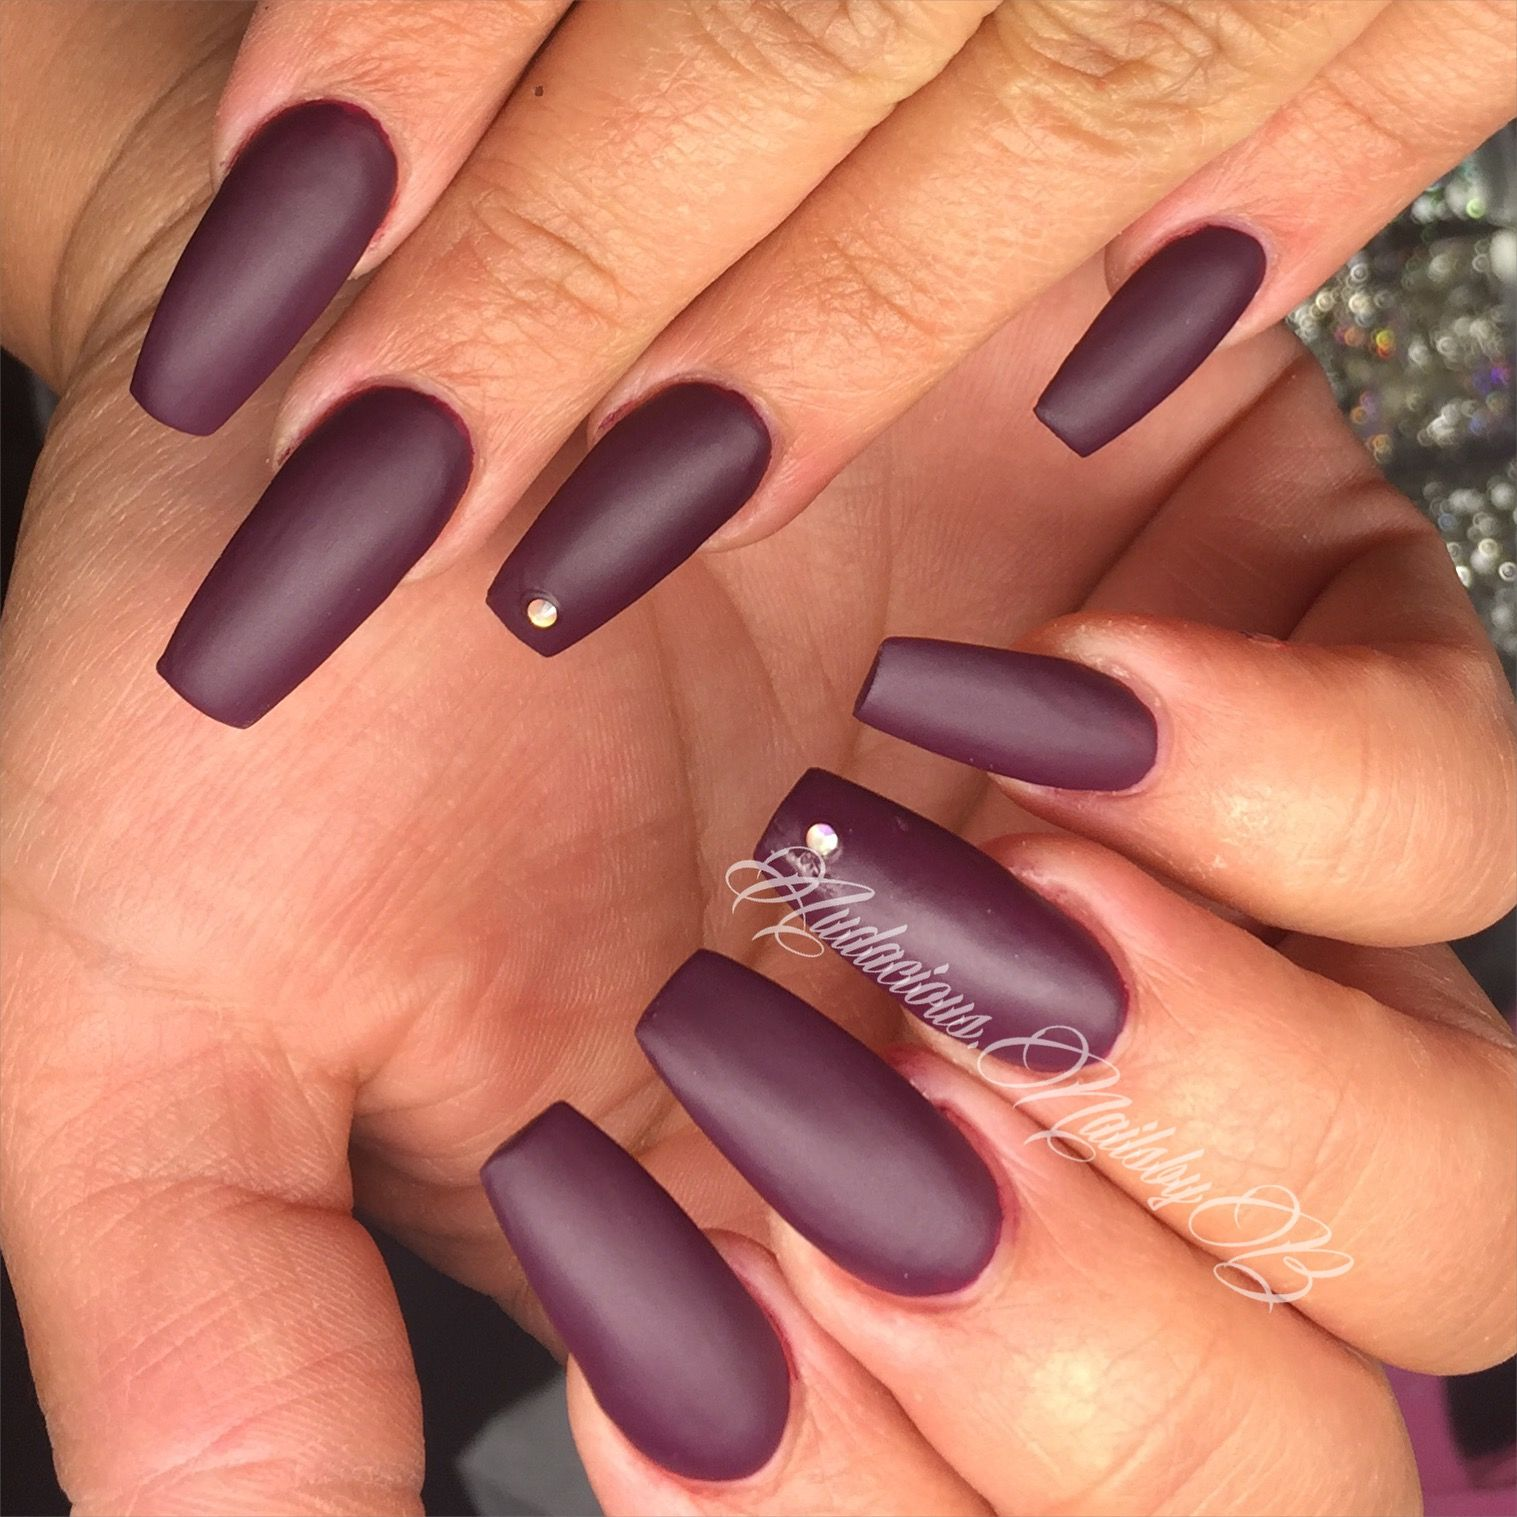 Vampy fall colors full set acrylic coffin nails, matte